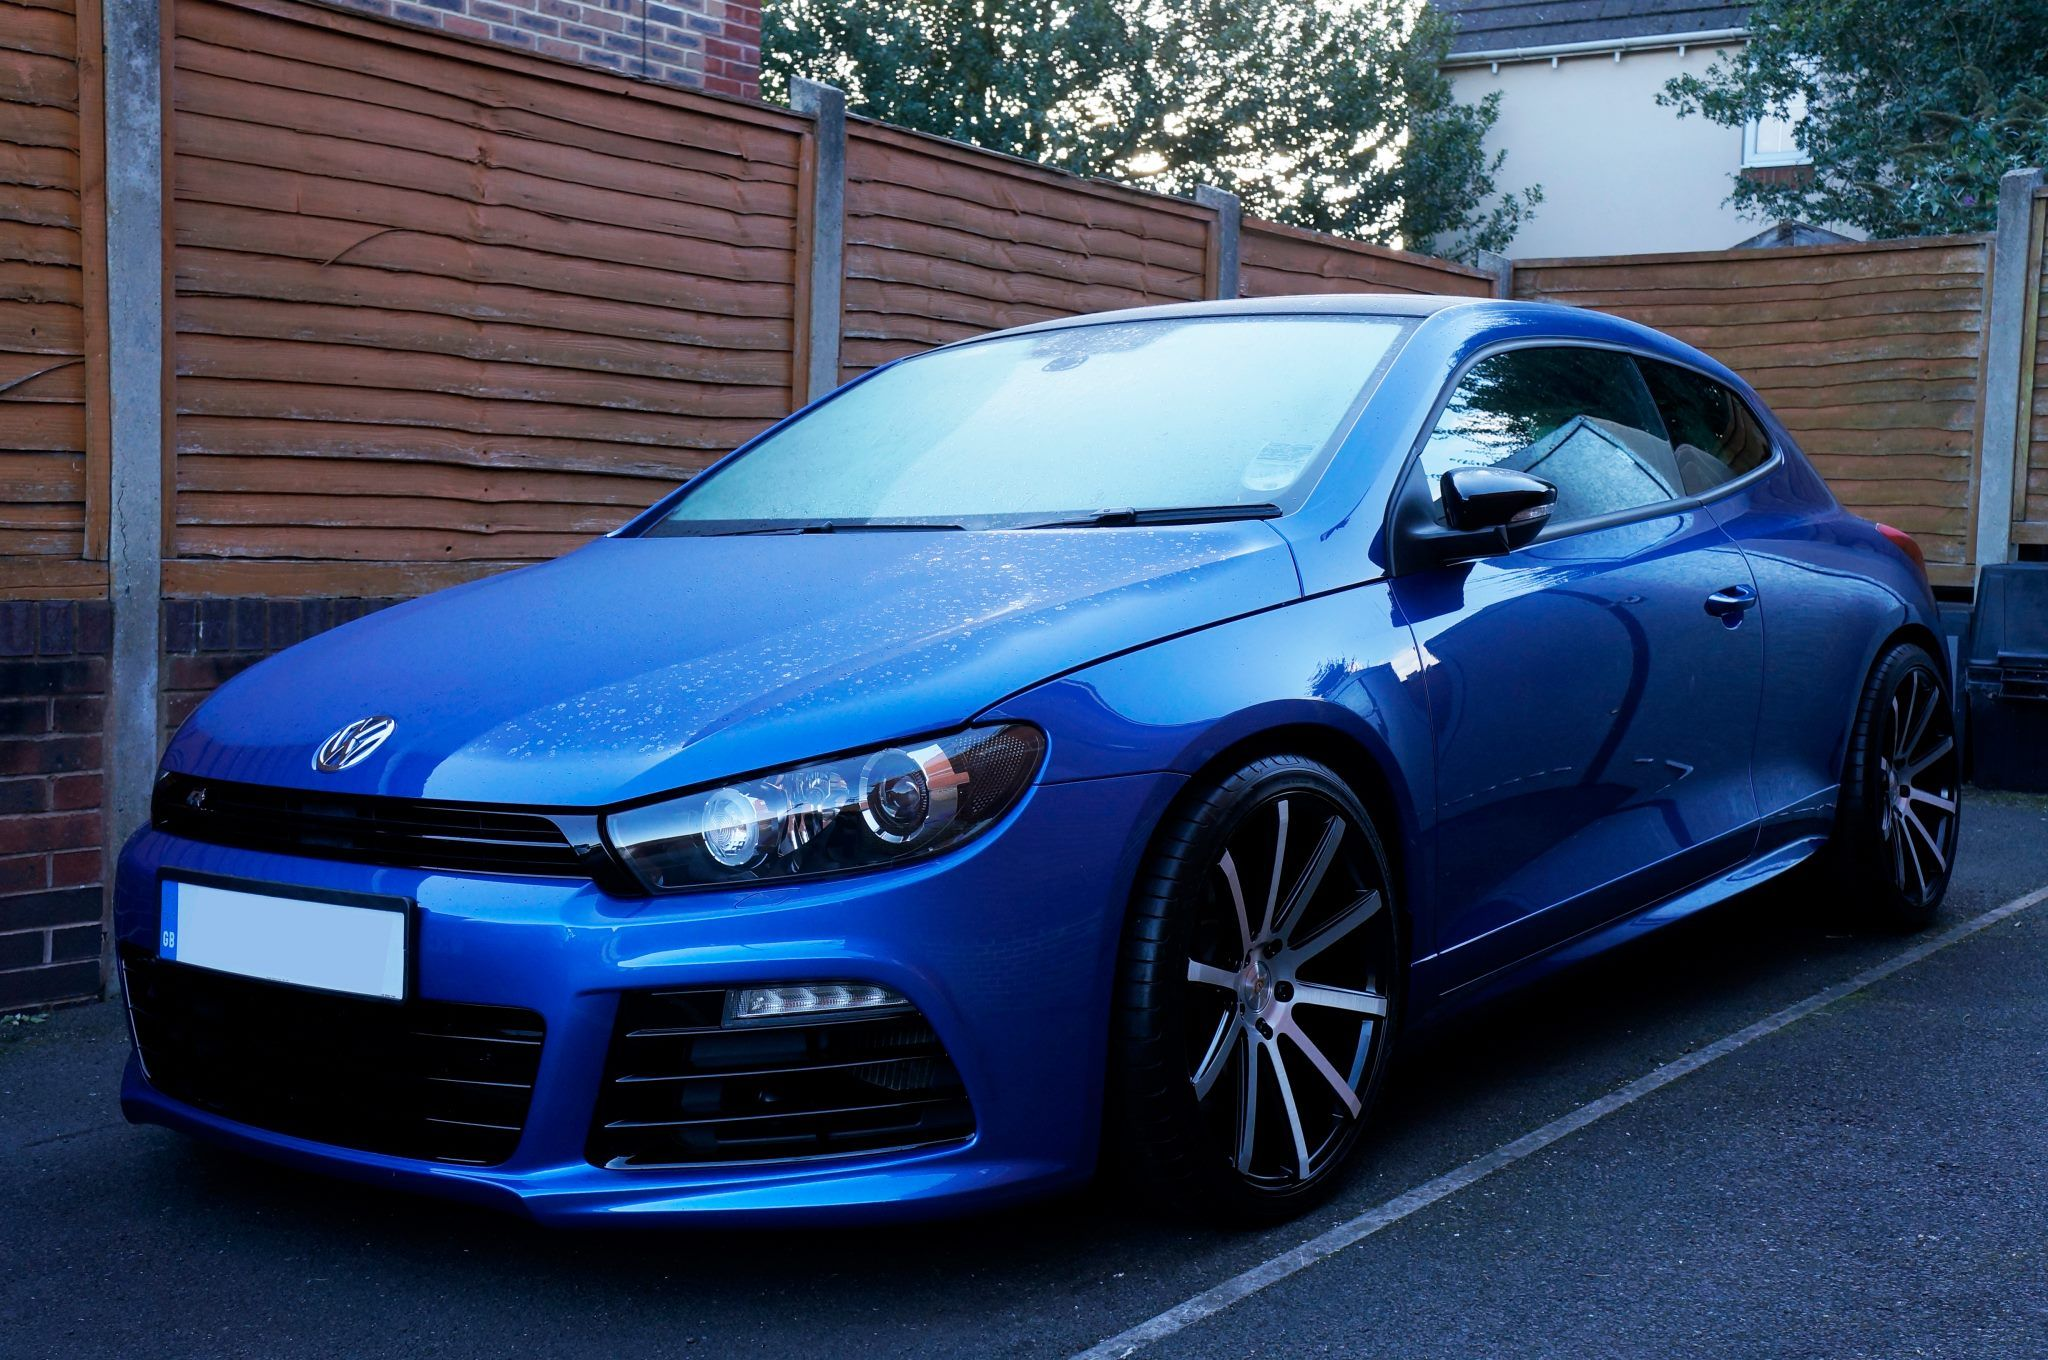 New MTM VW Sirocco pictures